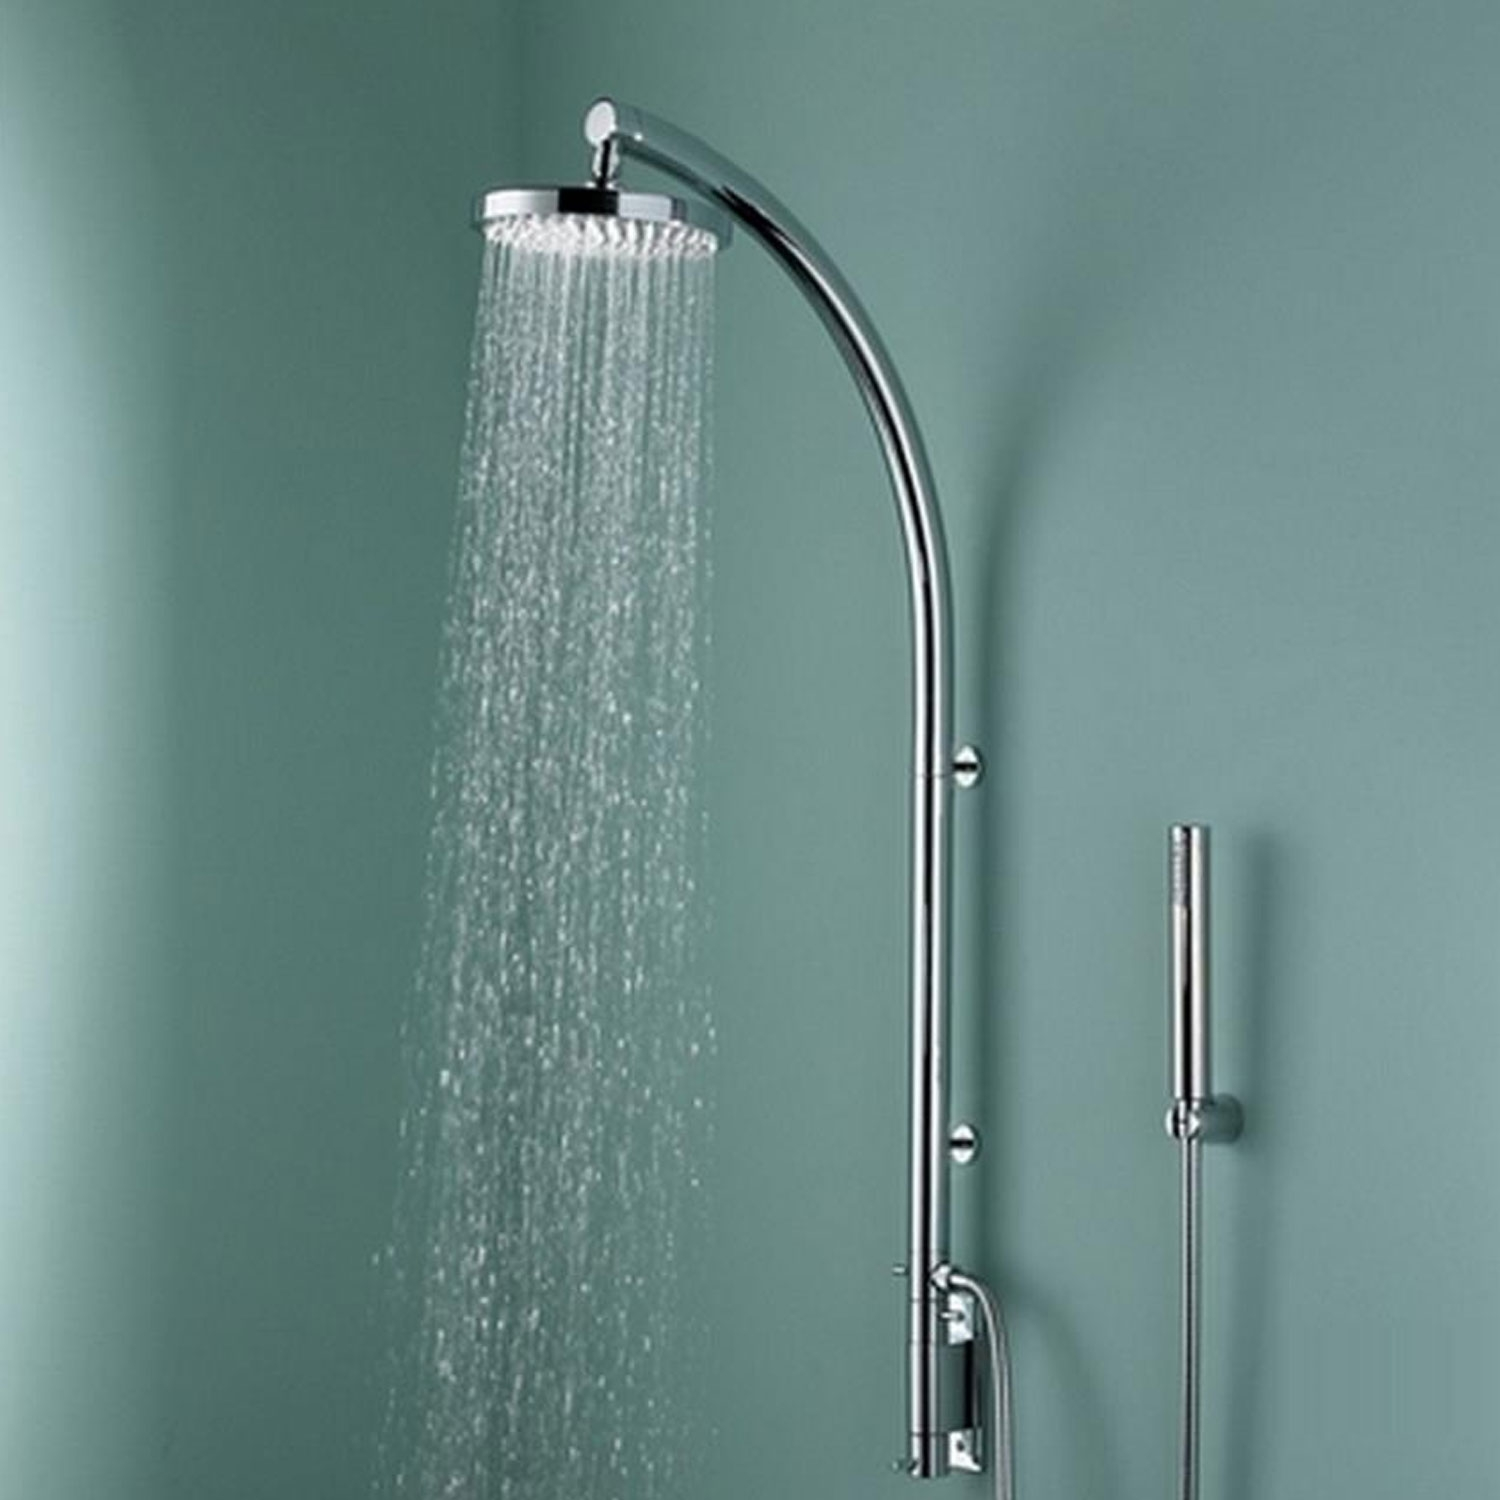 Bristan Orb Inline Dual Exposed Mixer Shower with Shower Kit + Fixed Head